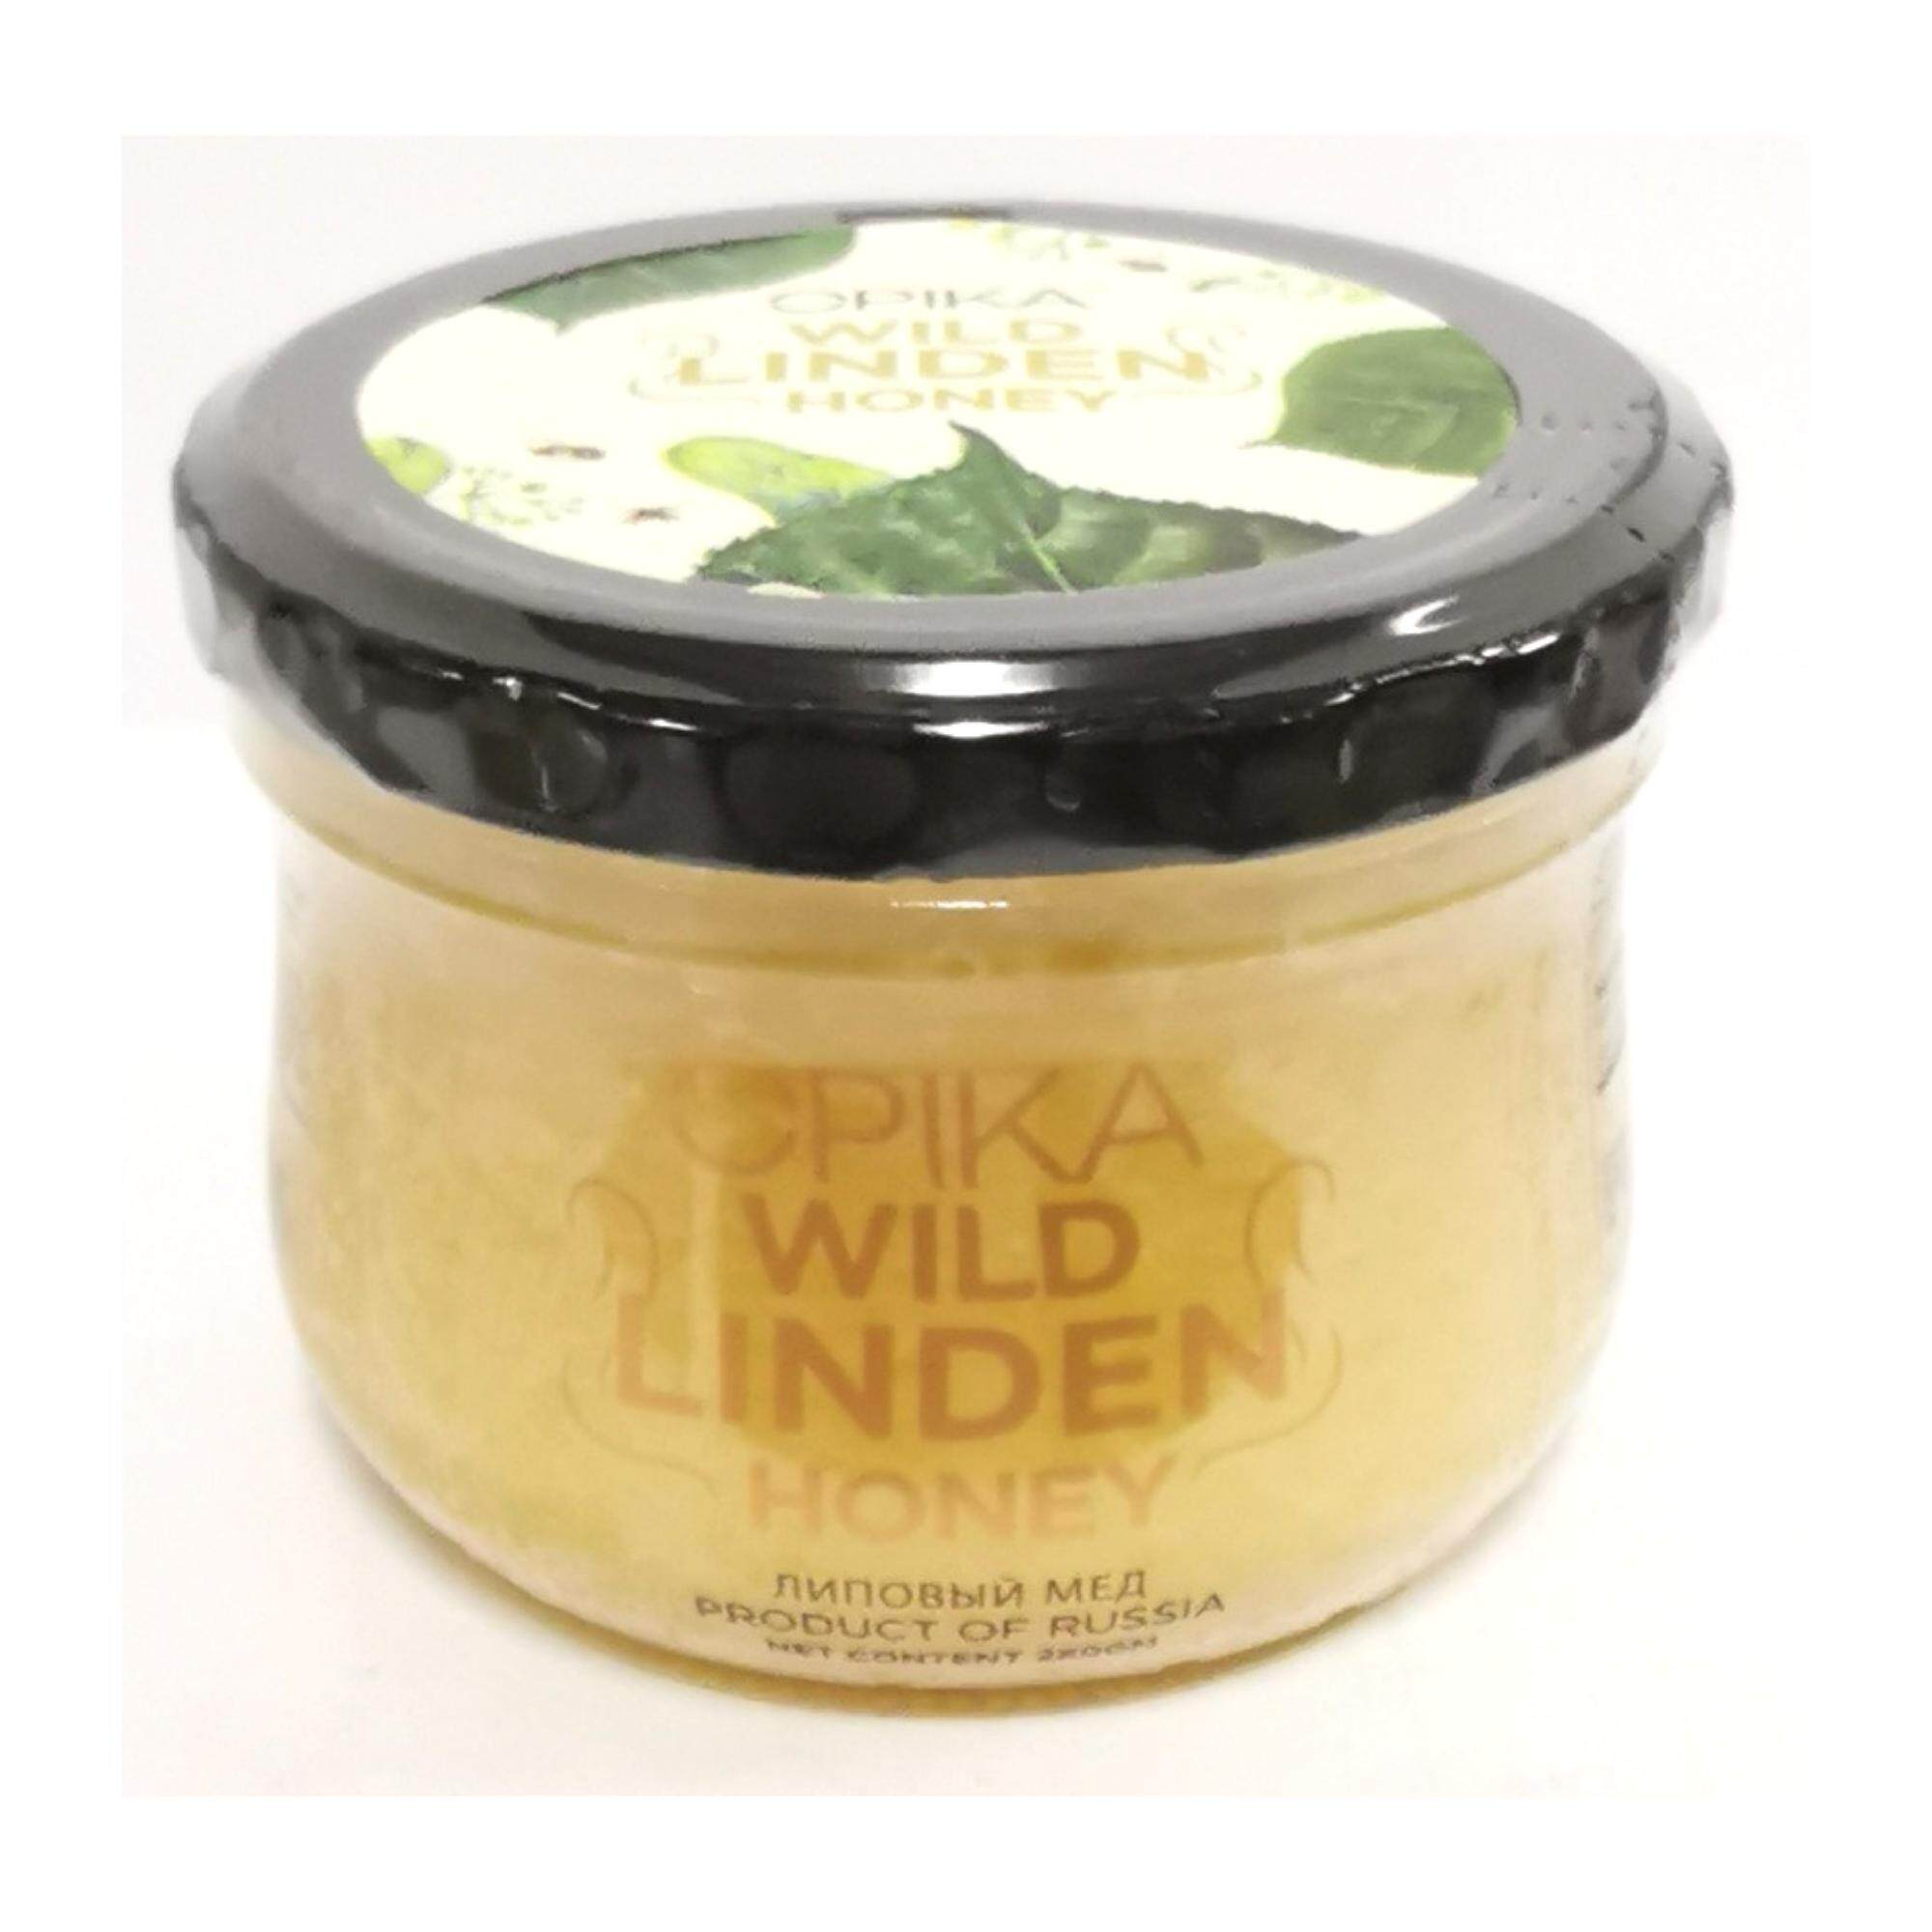 Opika White Russian Linden Honey - 280gm By Opika Organic Sdn Bhd.